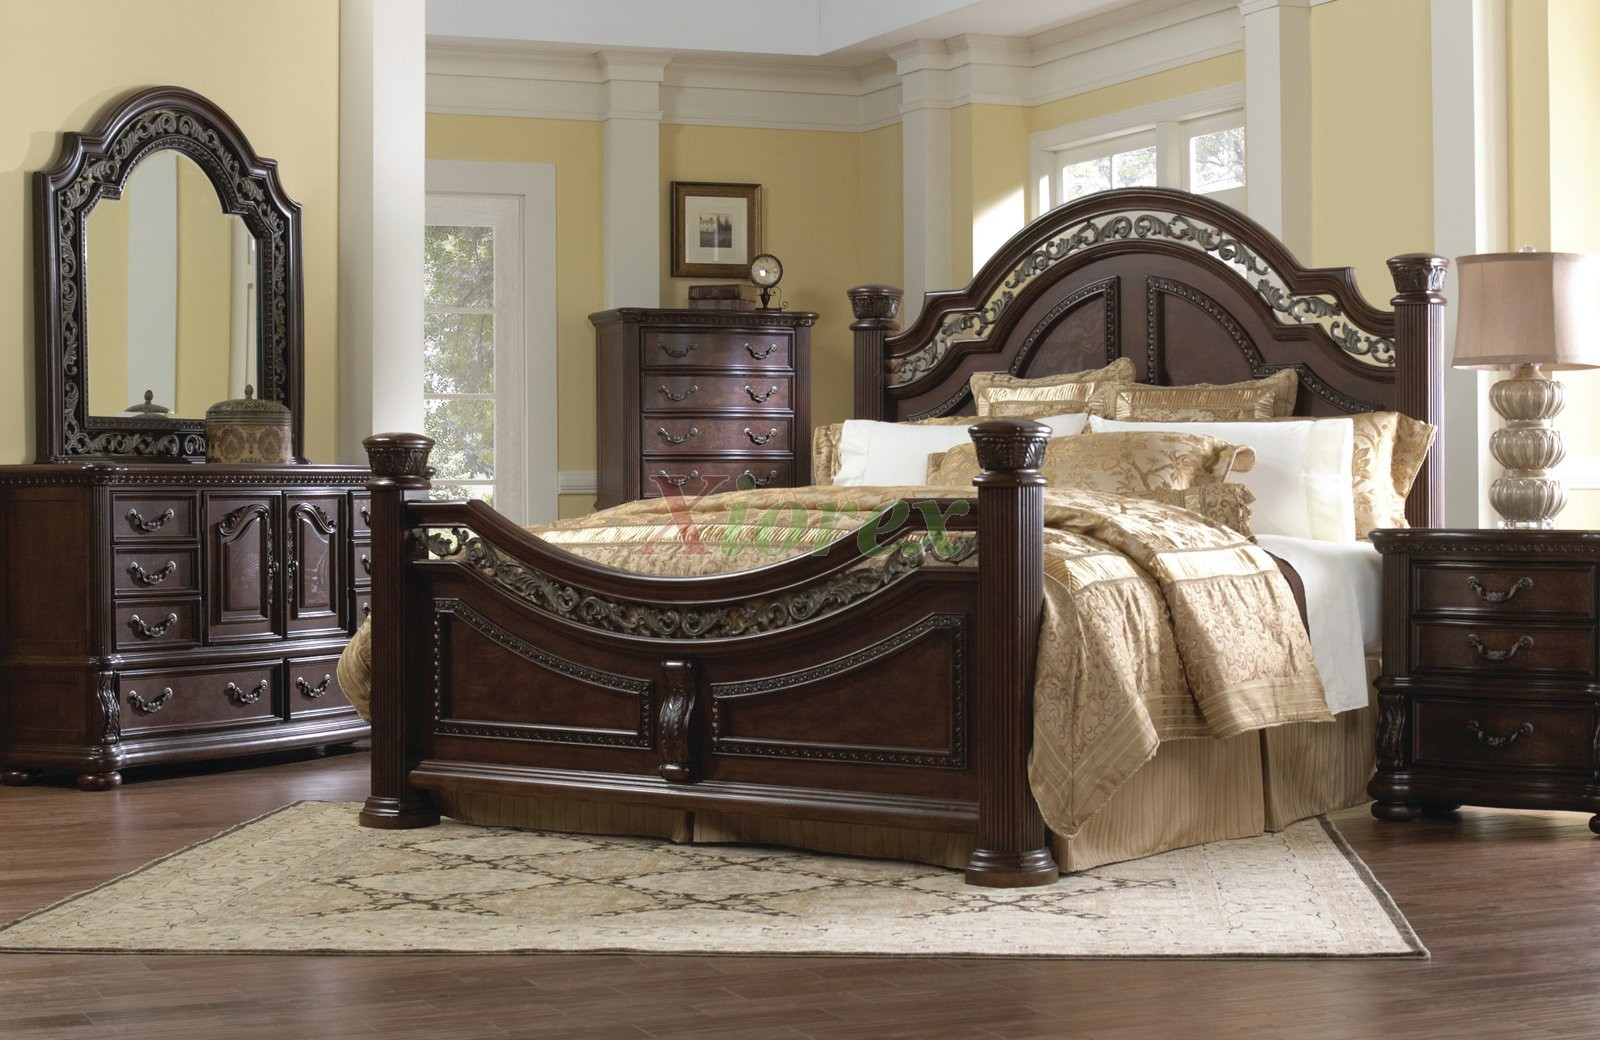 Traditional Bedroom Furniture Set w Arched Headboard Beds 107 | Xiorex